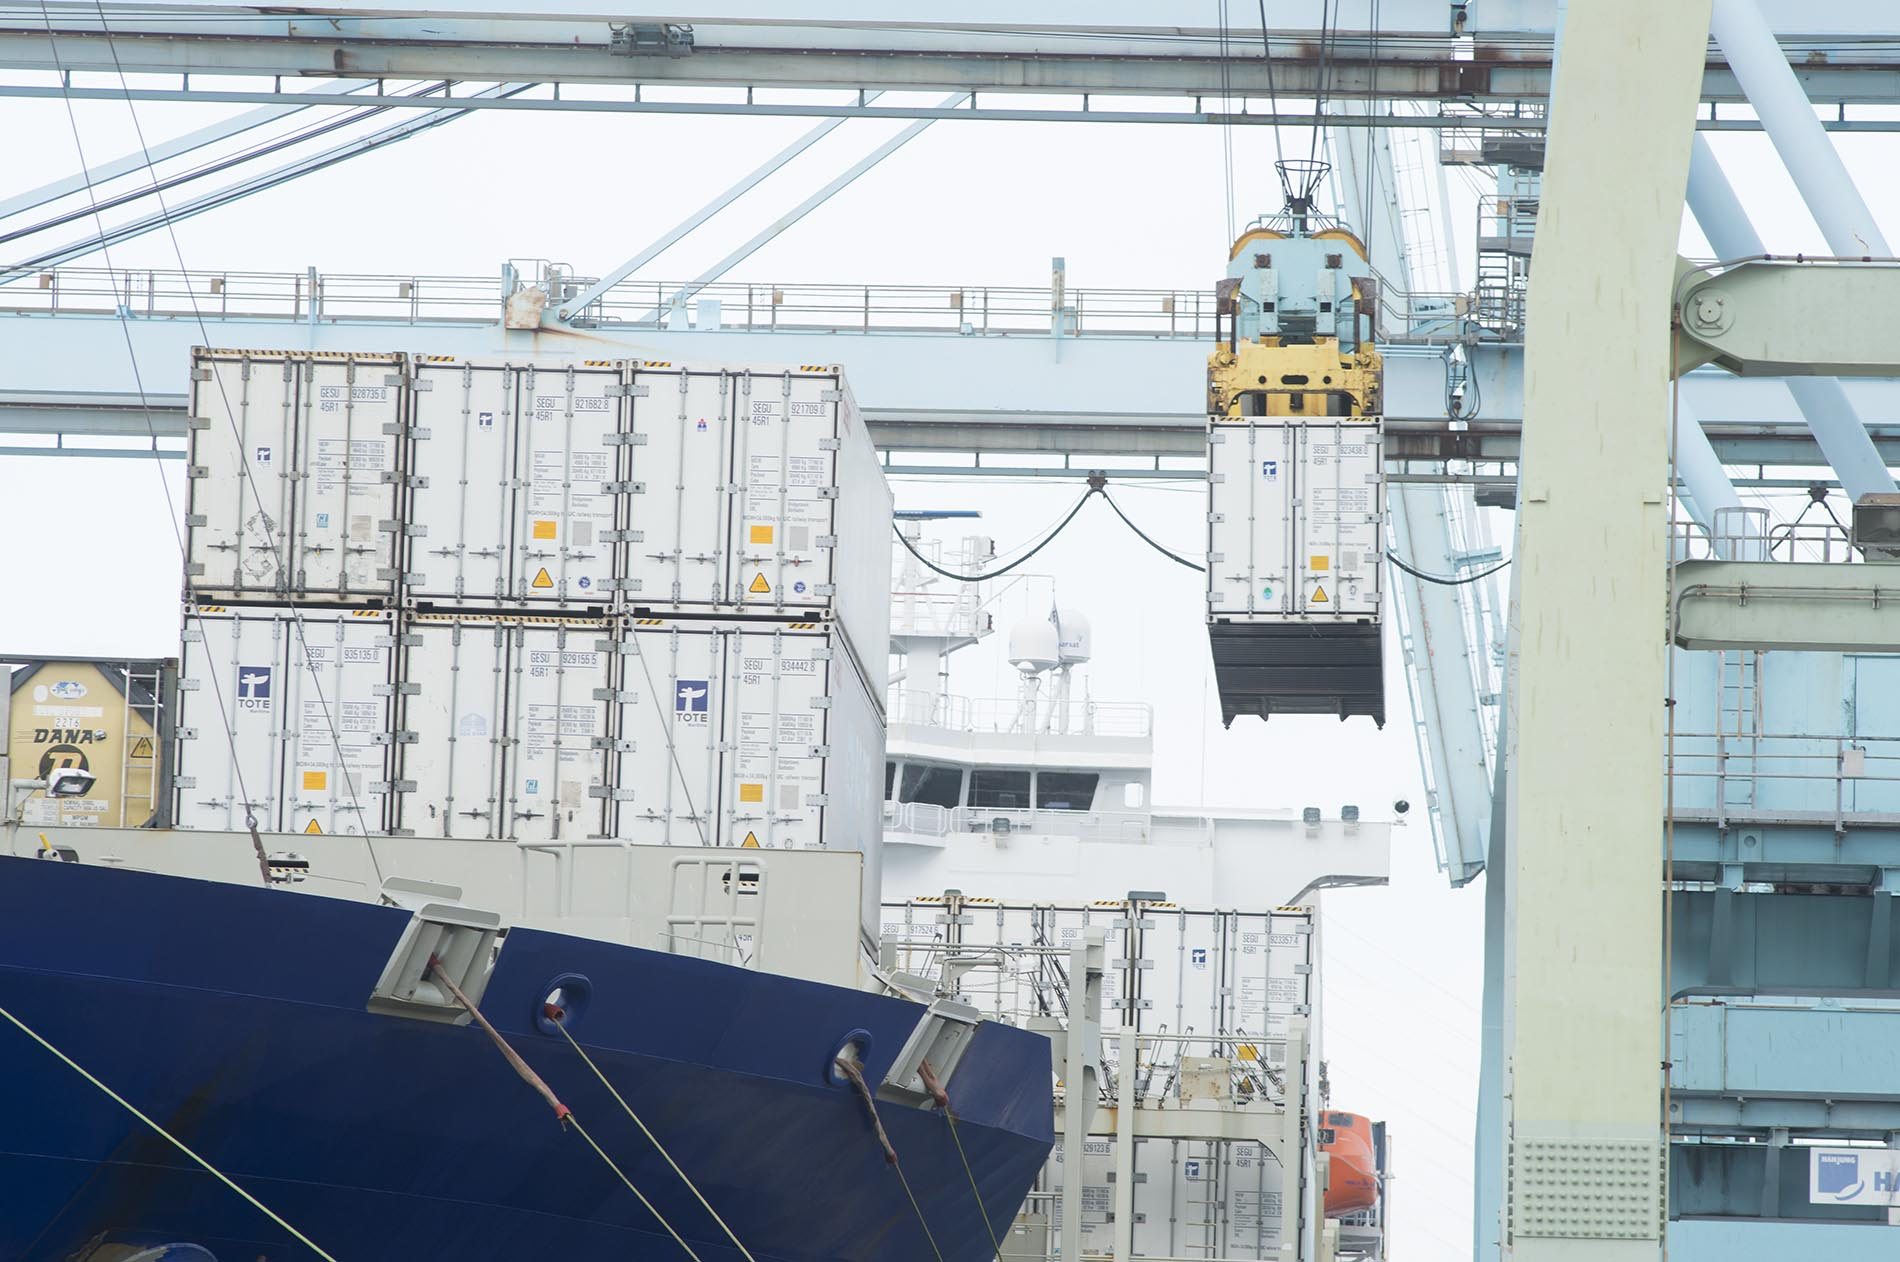 Containers loaded onto ship